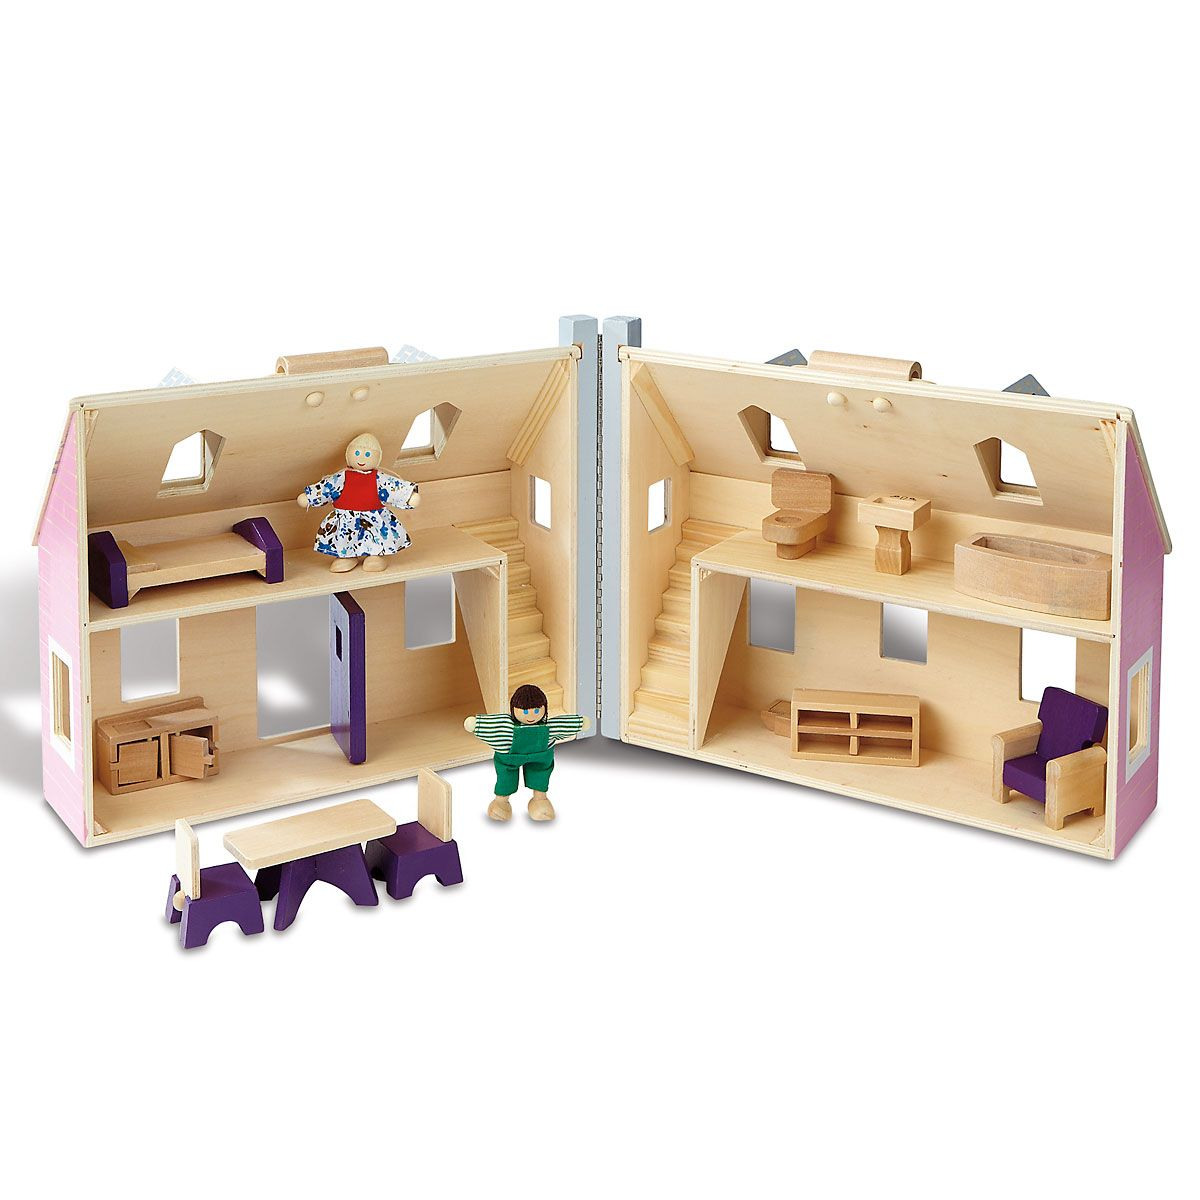 Fold & Go Personalized Dollhouse by Melissa & Doug®